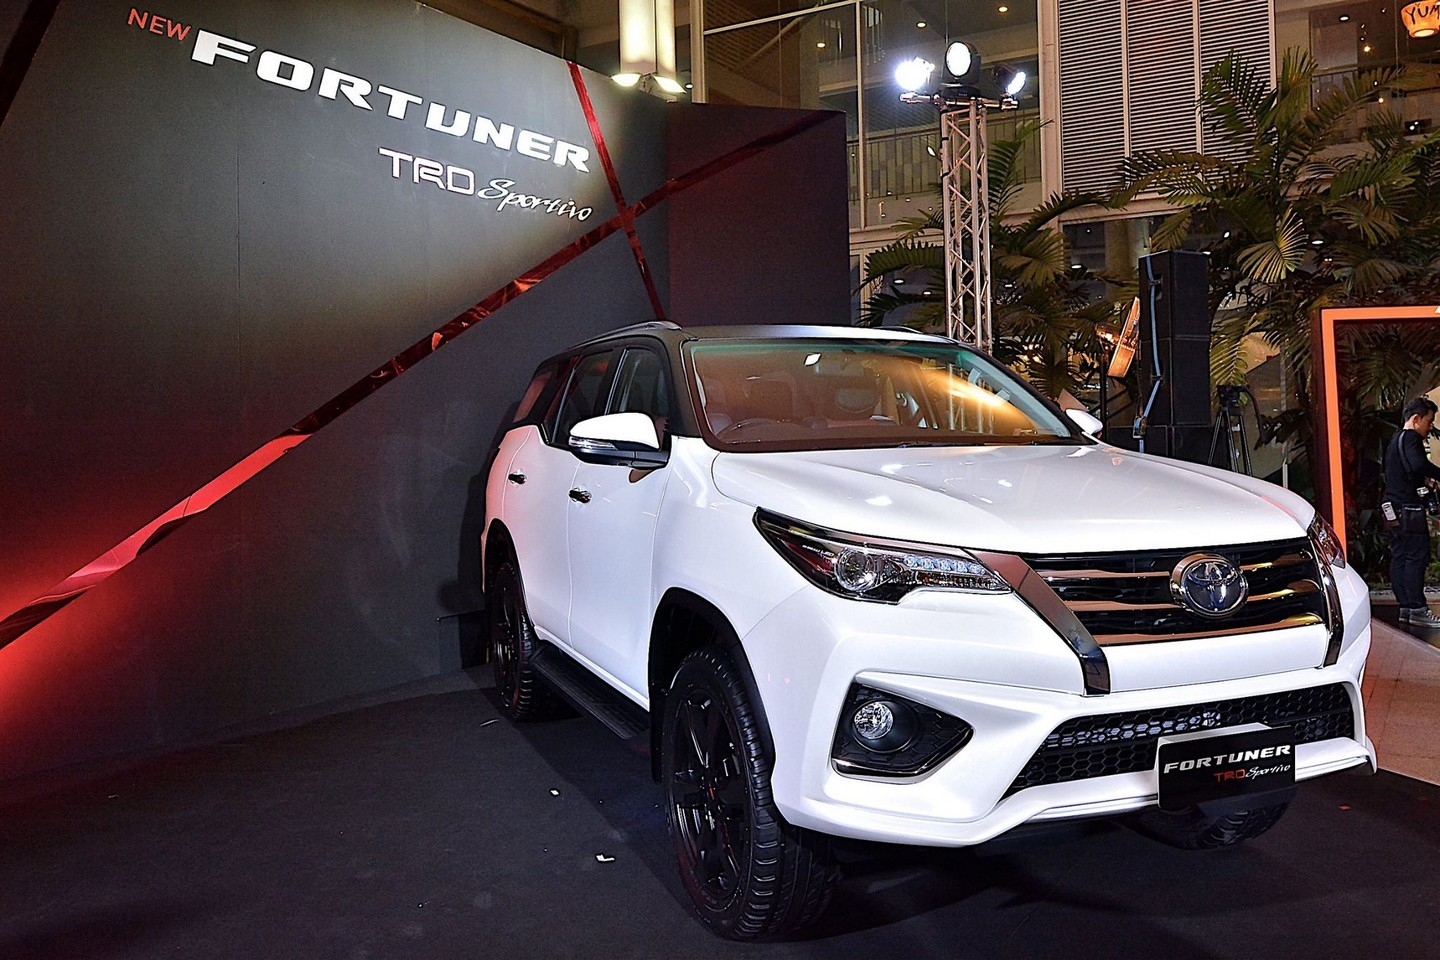 New Toyota Fortuner Trd Sportivo Is A Hilux Suv With Attitude